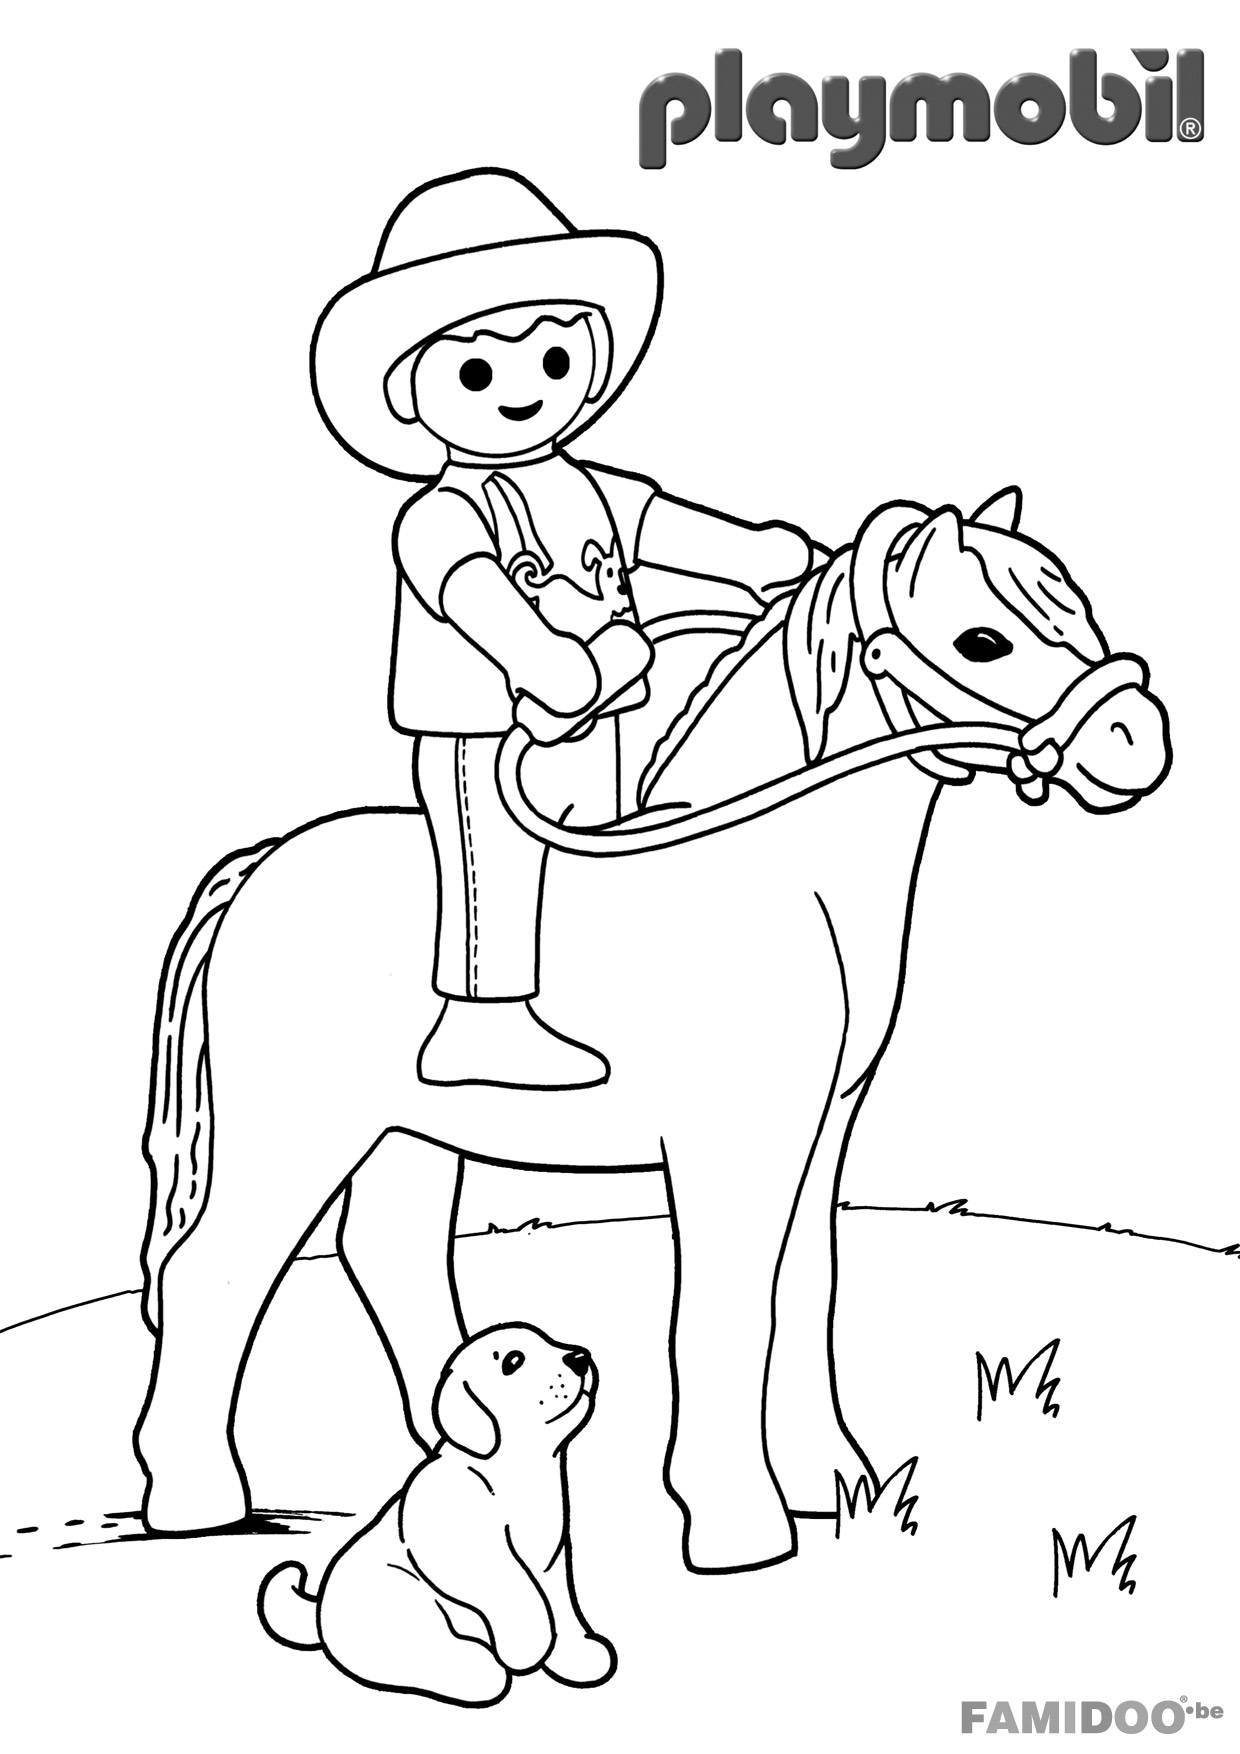 The Best Free Playmobil Coloring Page Images Download From